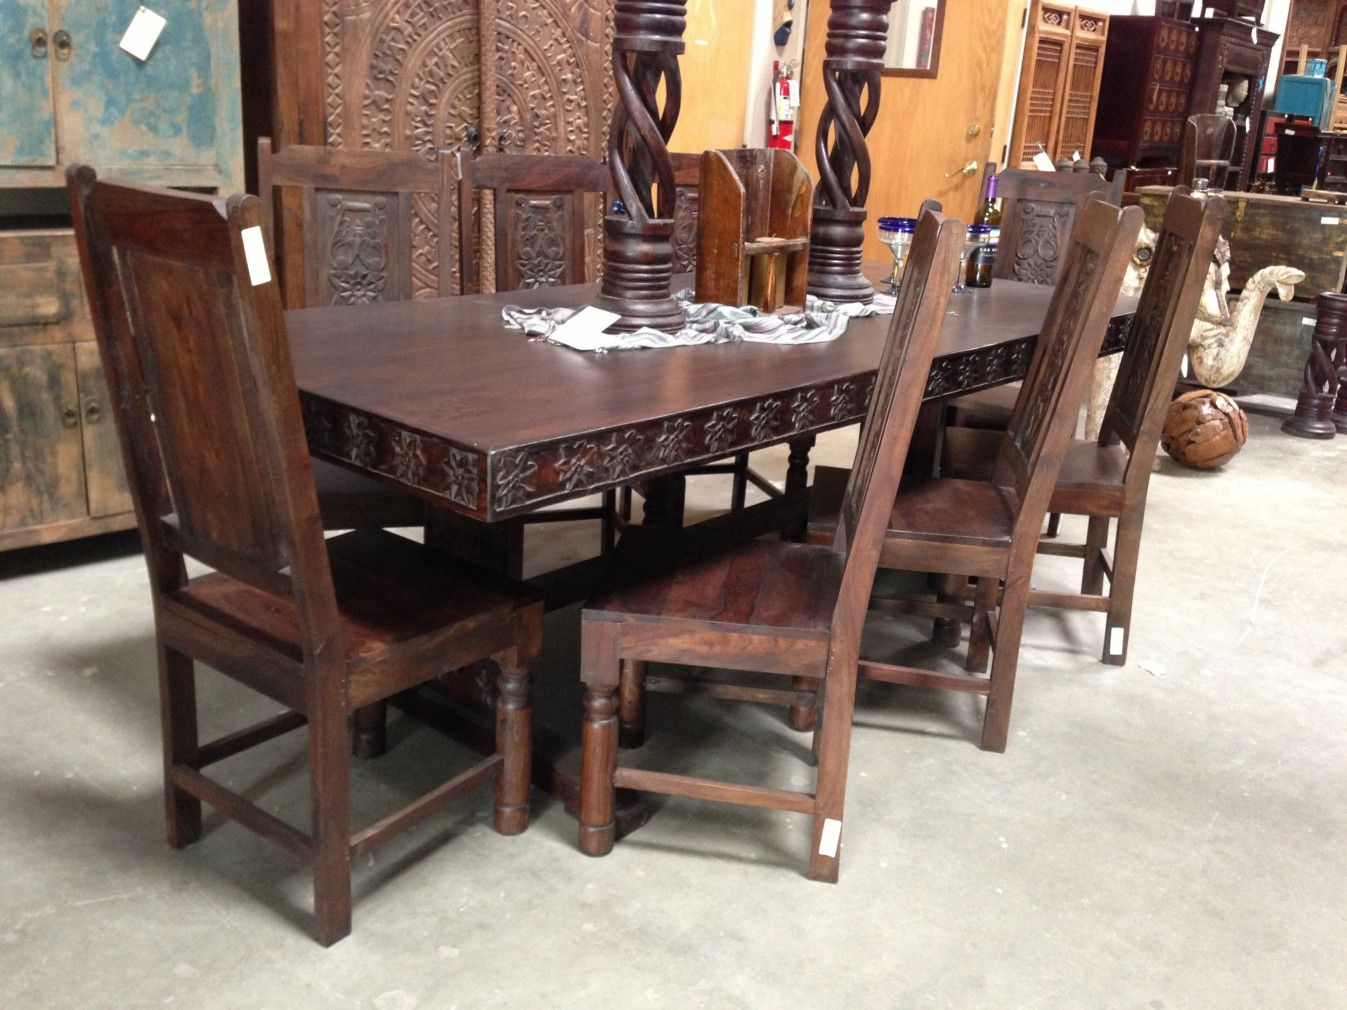 Dining Room Furniture San Diego 20 Dining Room Chairs San Diego  Modern Used Furniture Check